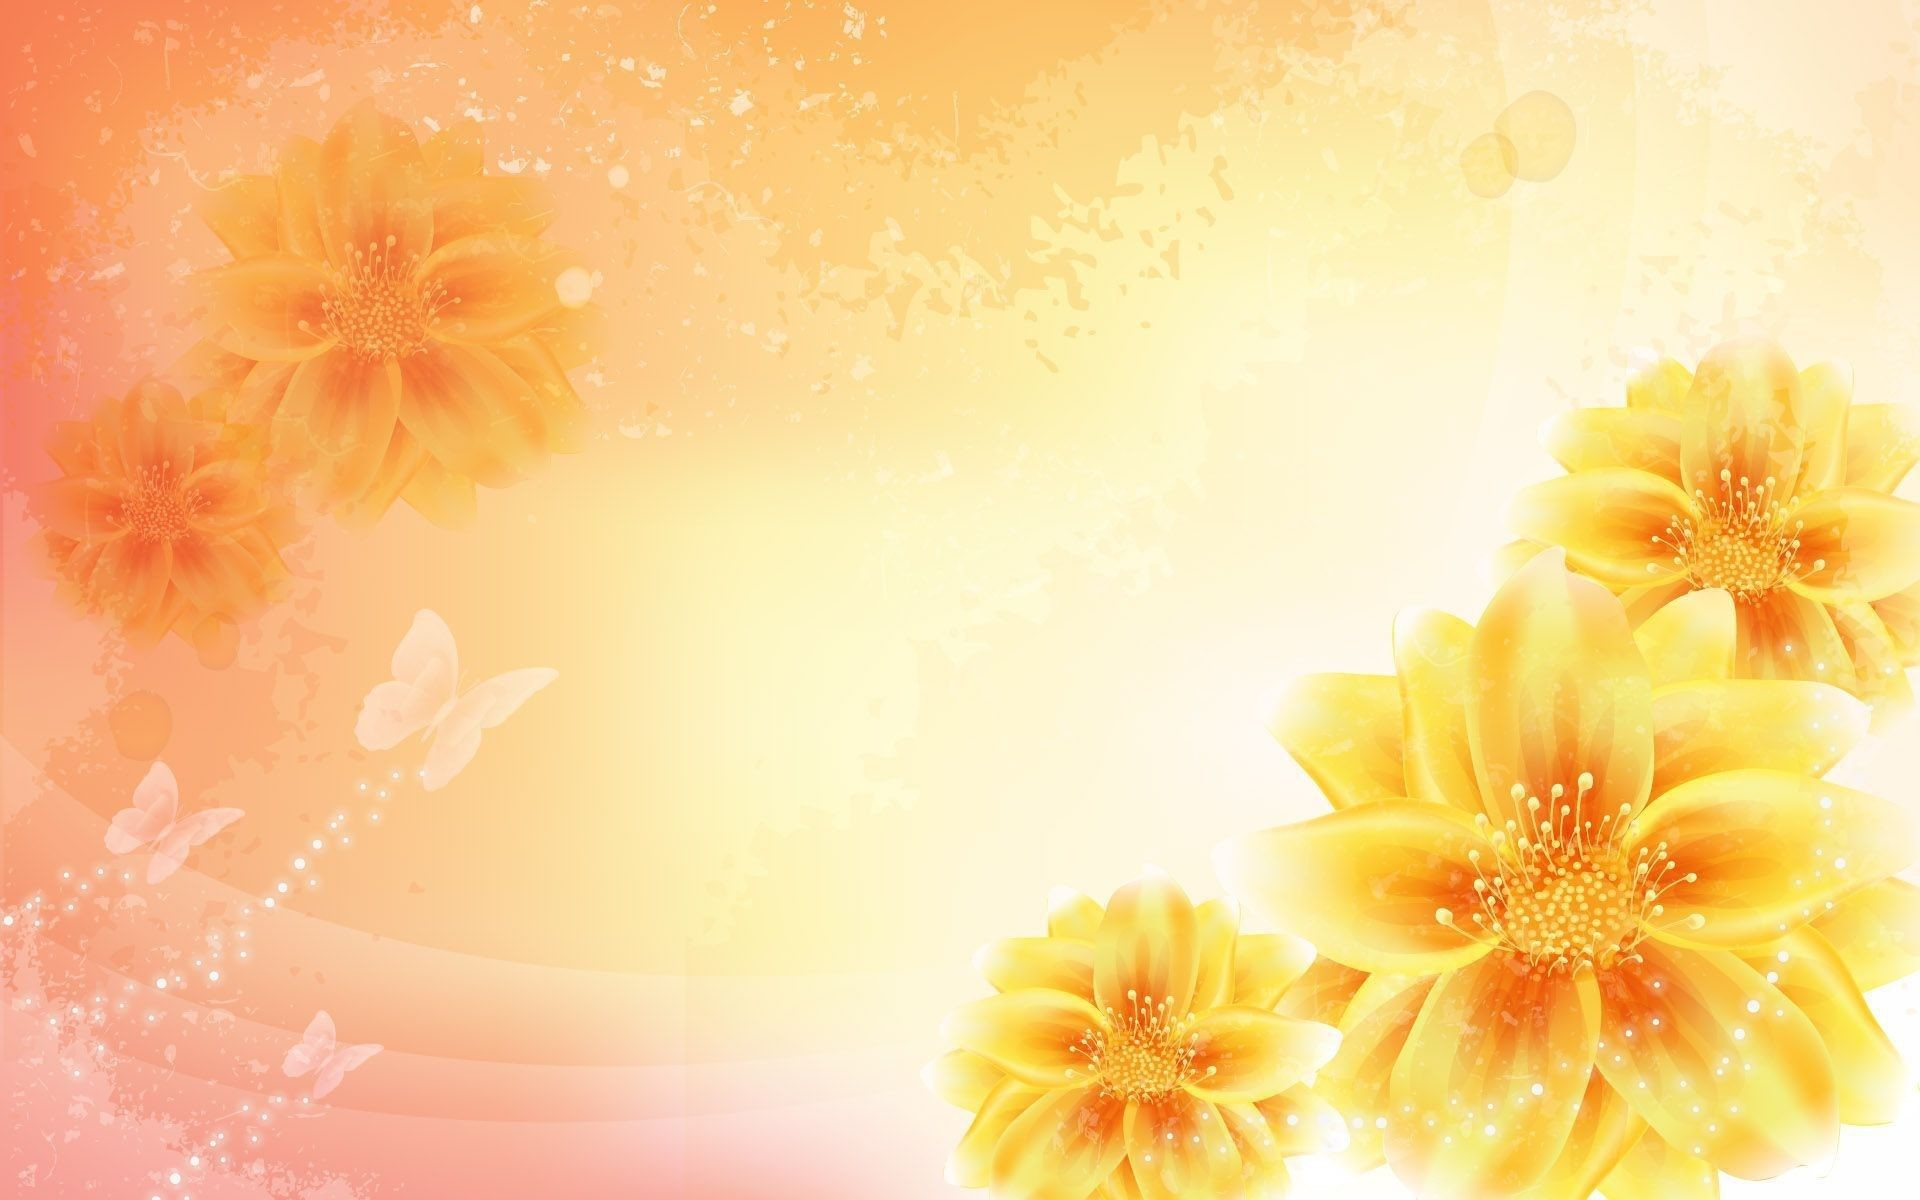 Yellow flowers wallpapers 59 background pictures 2560x1600 wallpapers yellow flowers gallery 69 plus pic wpw307247 mightylinksfo